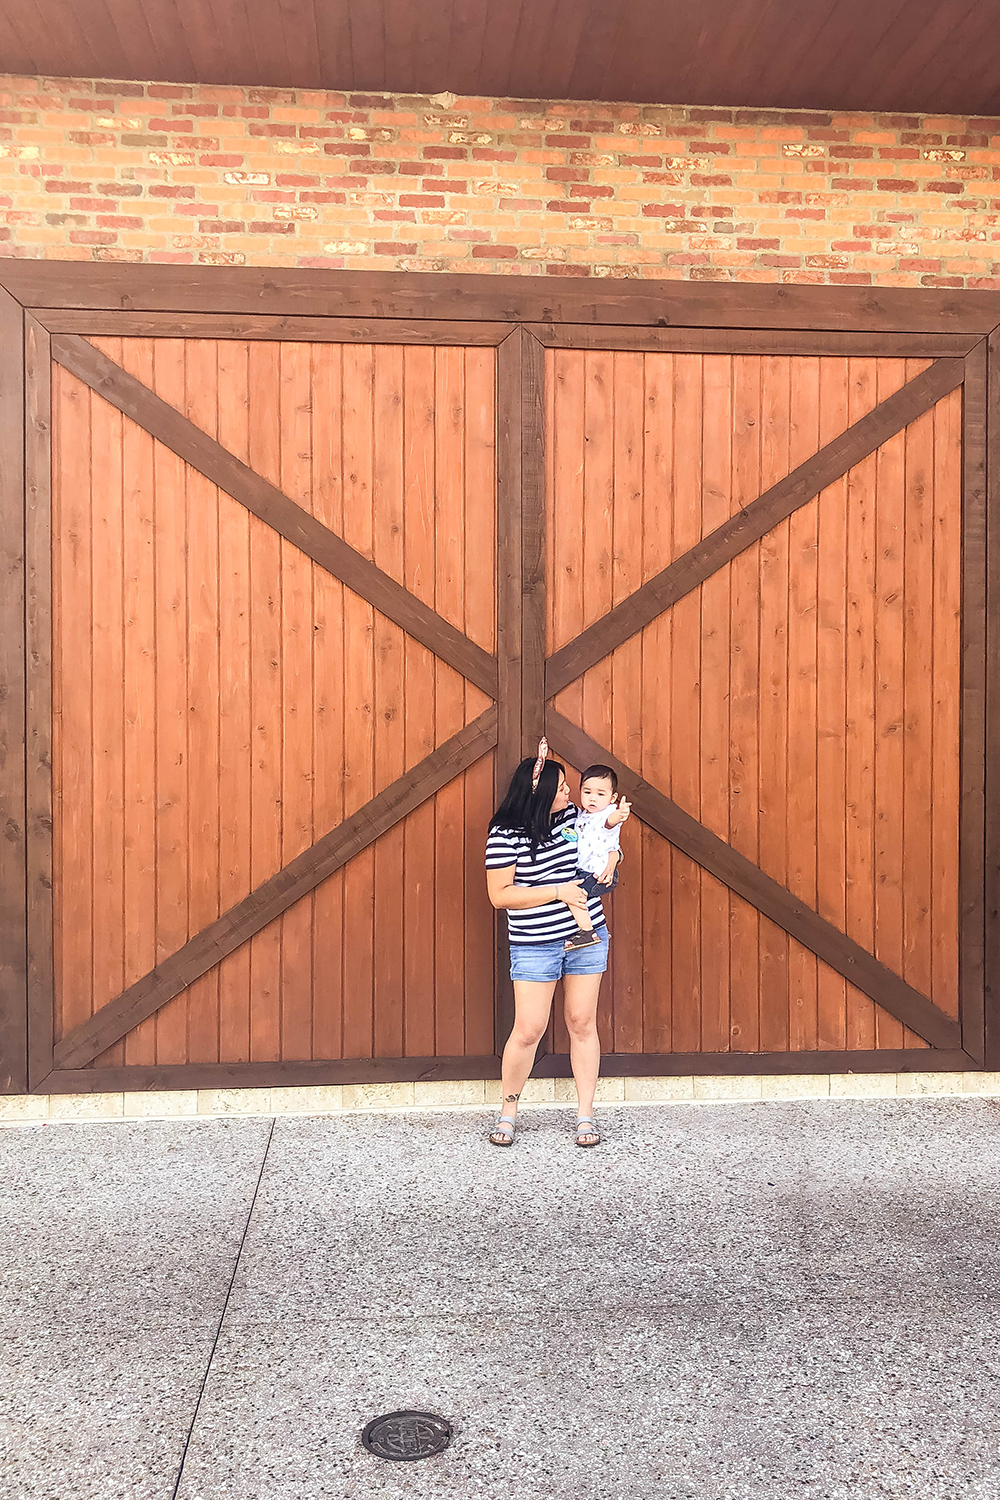 Our favorite Instagram-worthy walls in Walt Disney World